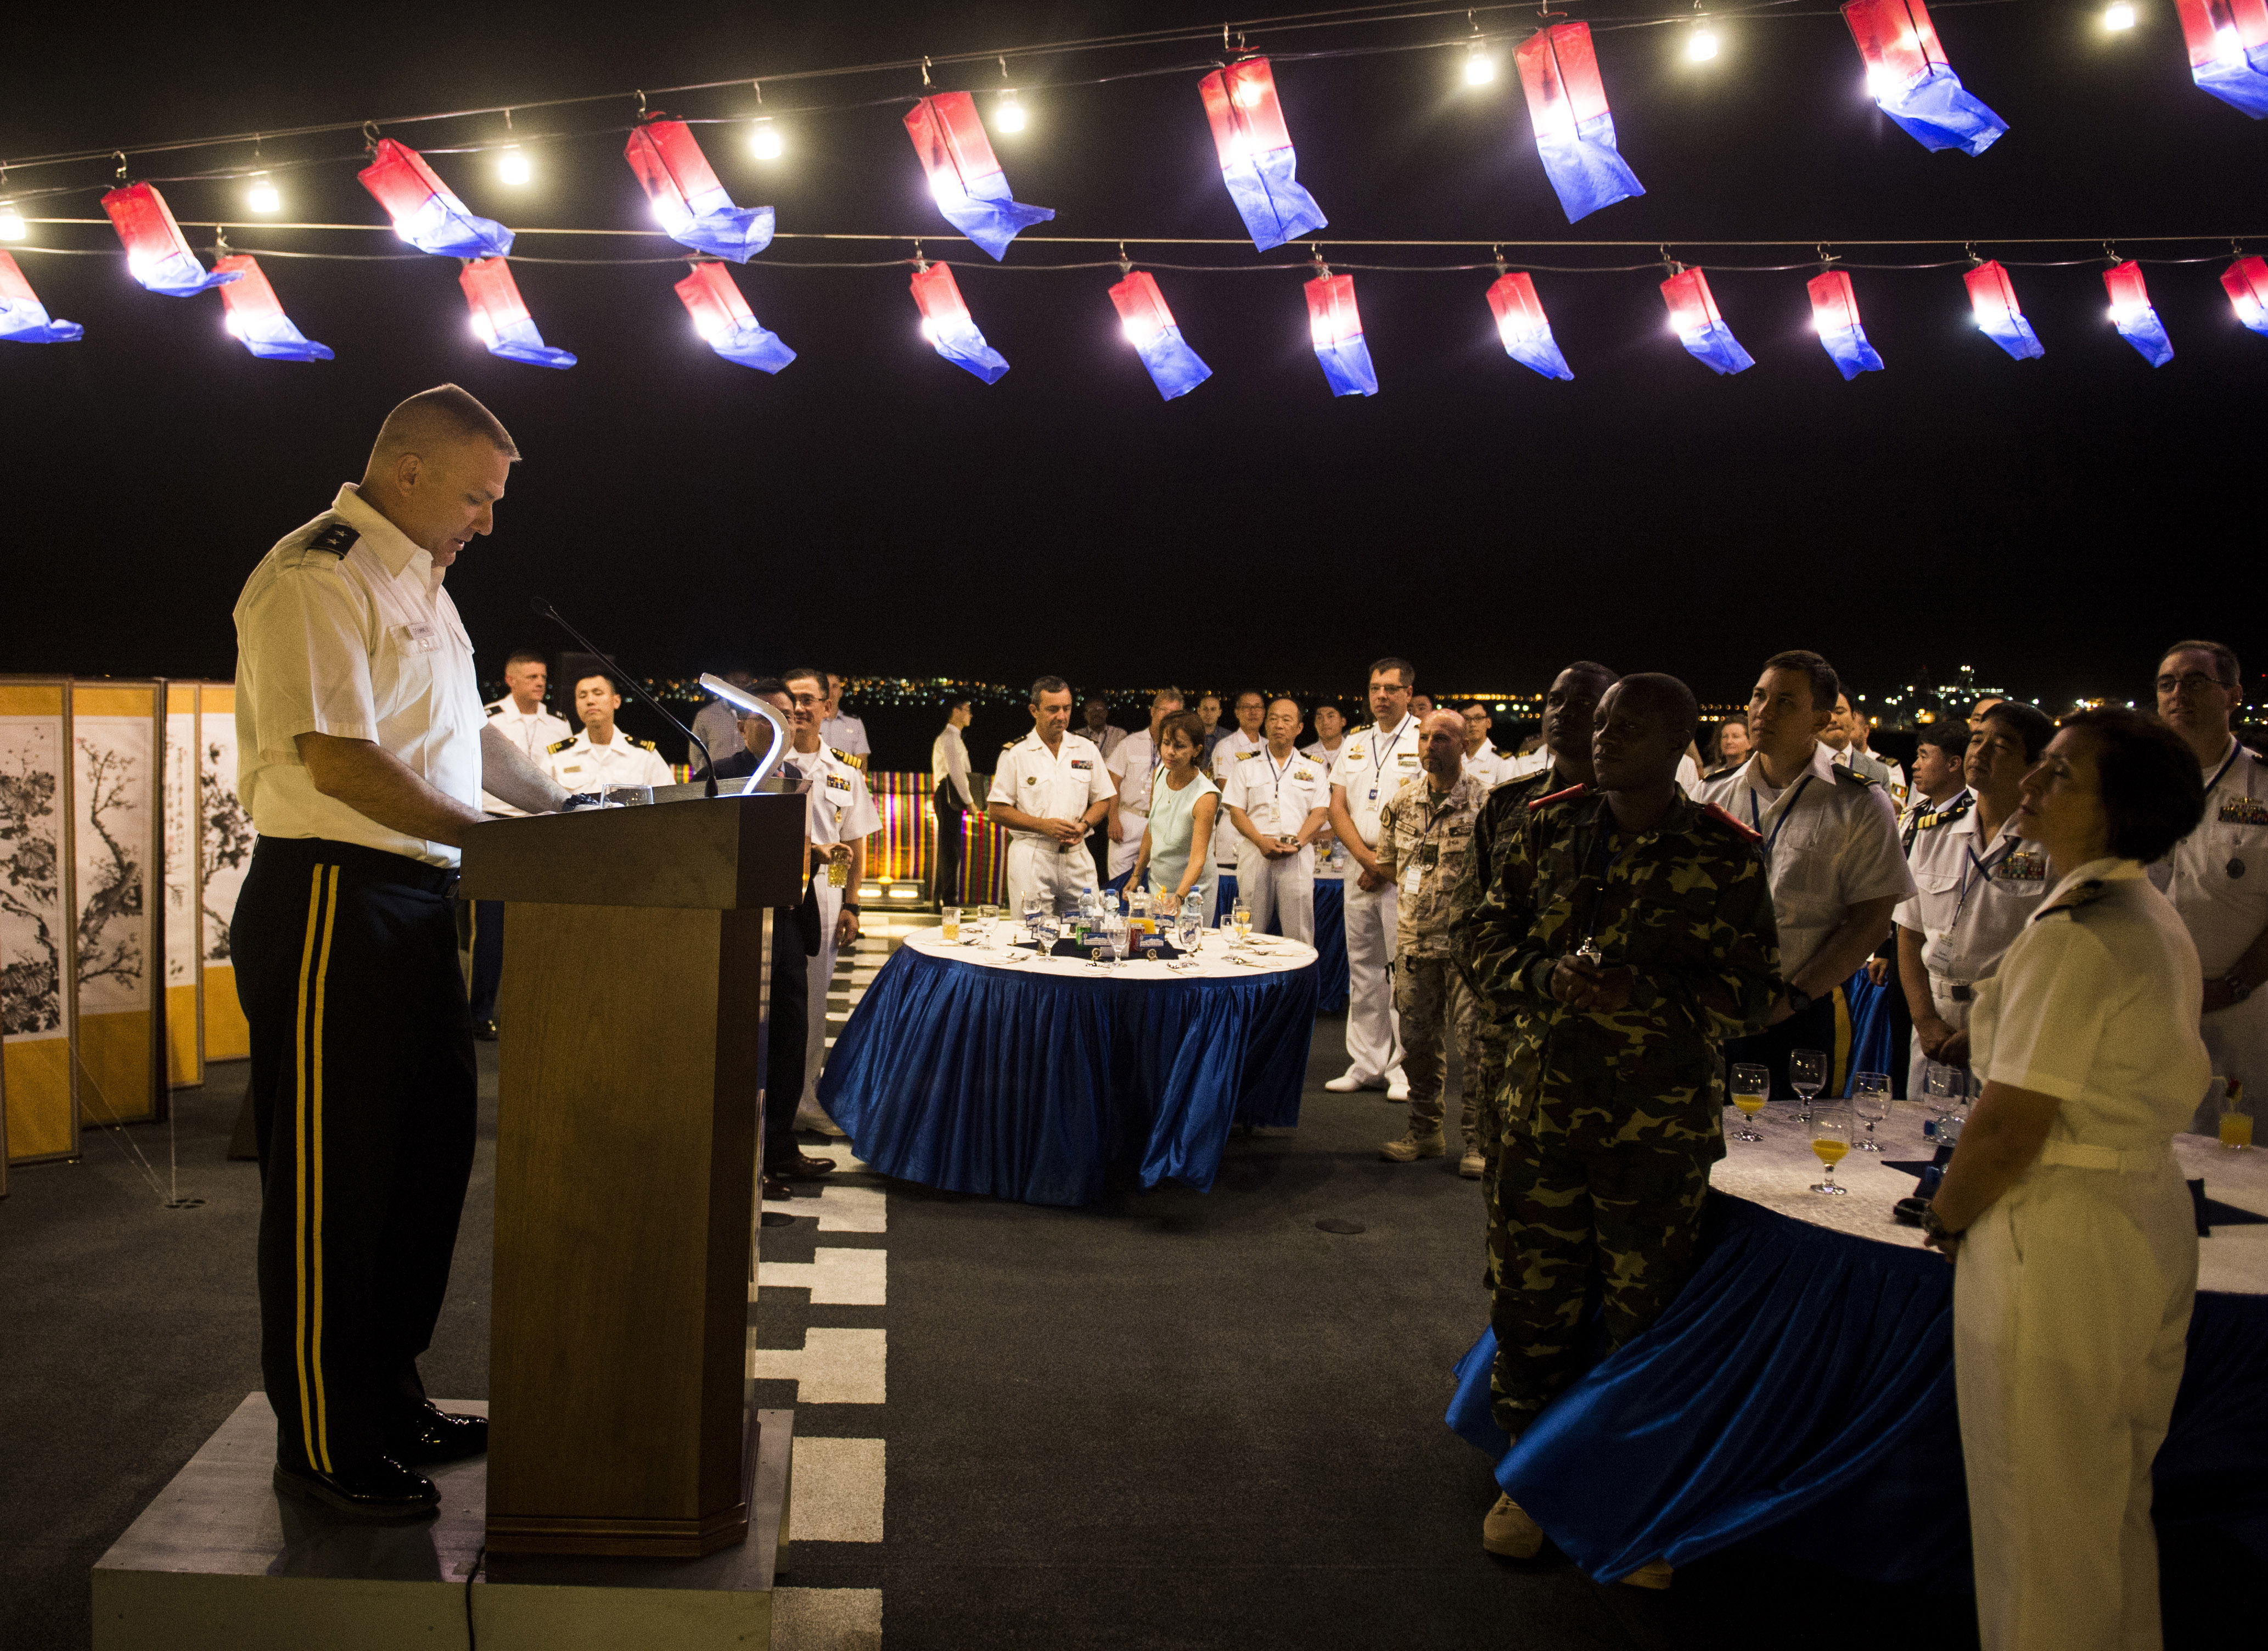 Maj. Gen. Mark Stammer, Combined Joint Task Force-Horn of Africa commanding general, gives a toast during a reception on board the Republic of Korea's Navy Choi Young Destroyer Dec. 21, 2015, in Djibouti. The ship's primary mission is to provide aid for ship convoy operations, provide maritime security operations for counter piracy and sustain diplomatic alliances with foreign countries. The Choi Young commenced its counter-piracy operation on Nov. 27, 2015. The ship and its crew were critical in the success during Operation Dawn of Gulf of Aden on Jan. 1, 2011 when its visit, board, search, and seizure team rescued hostages from pirates on the ROK-operated chemical tanker, Samho Jewelry. (U.S. Air Force photo by Senior Airman Peter Thompson)